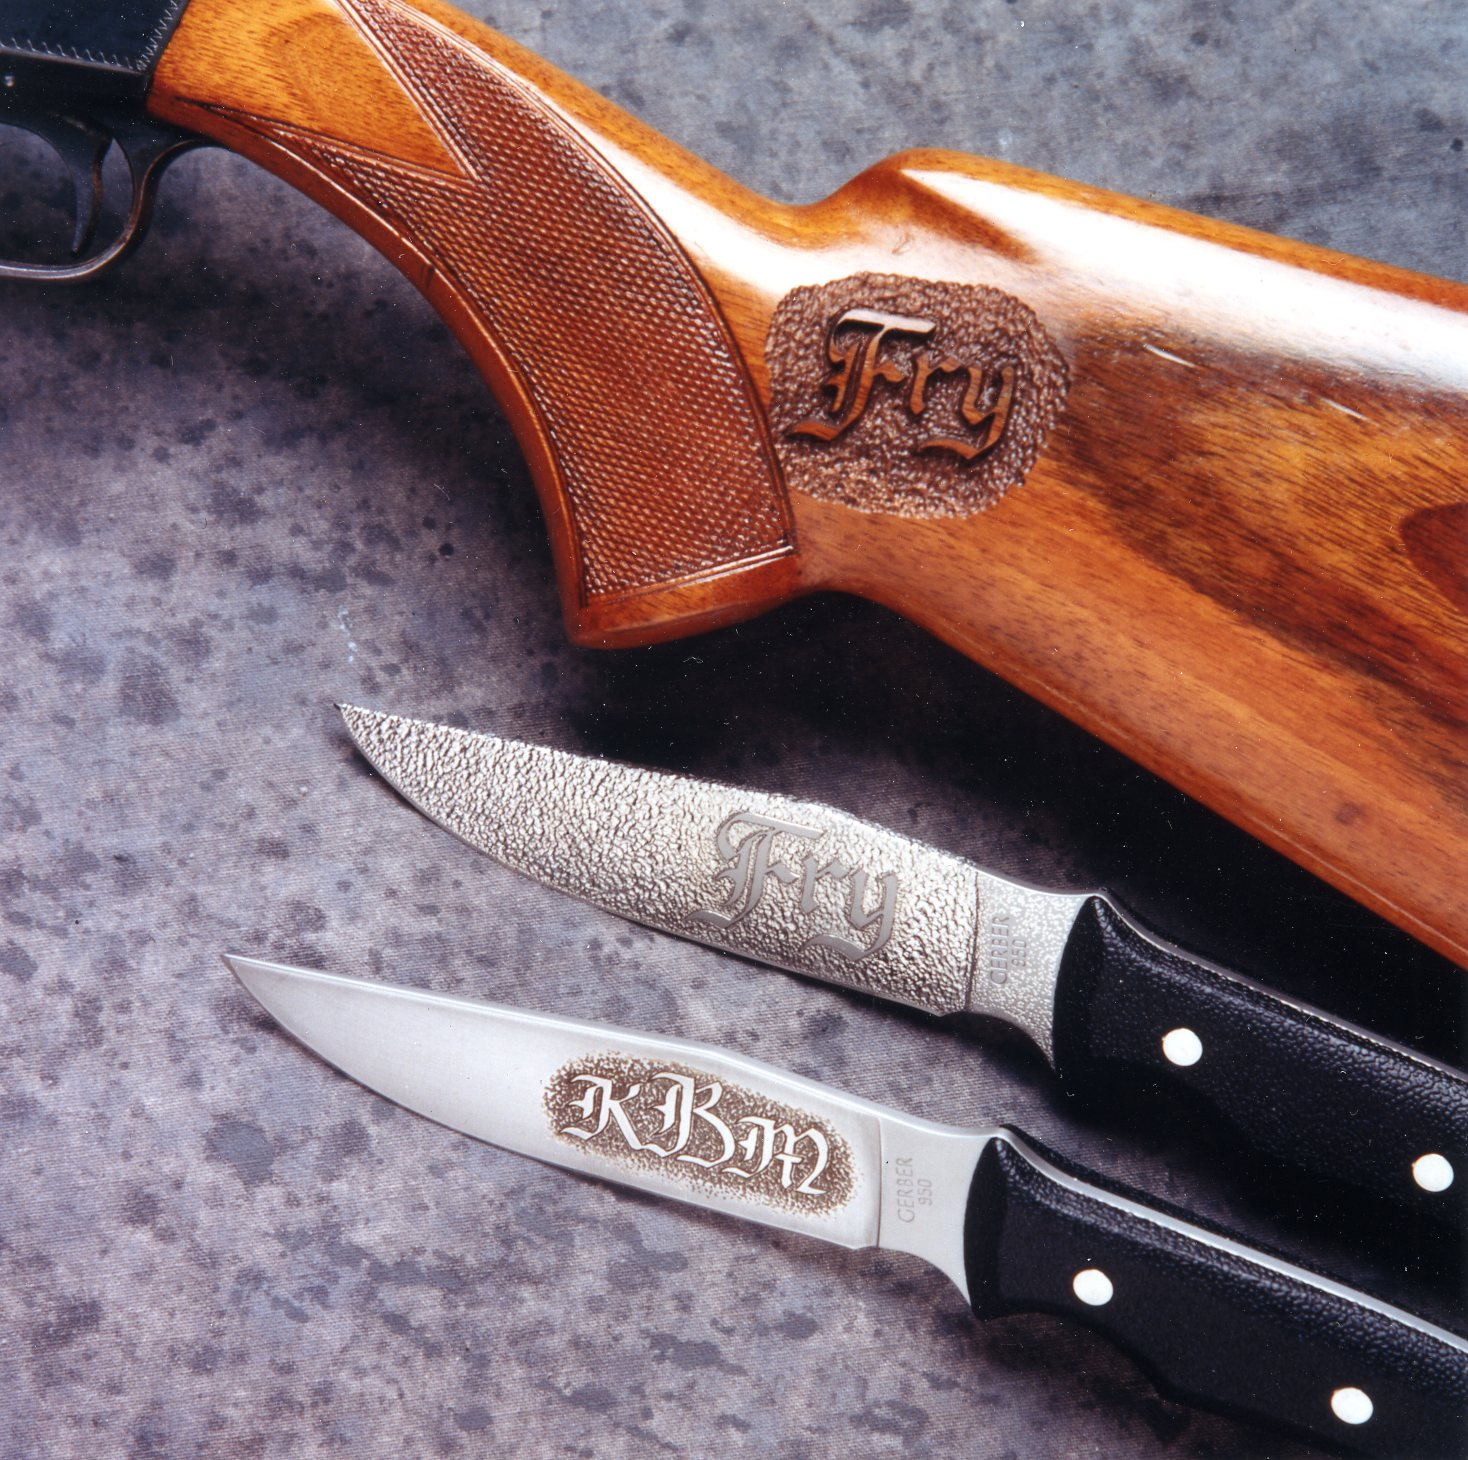 Ken Brown Engraving Dresses Up Two Knives And A Gun